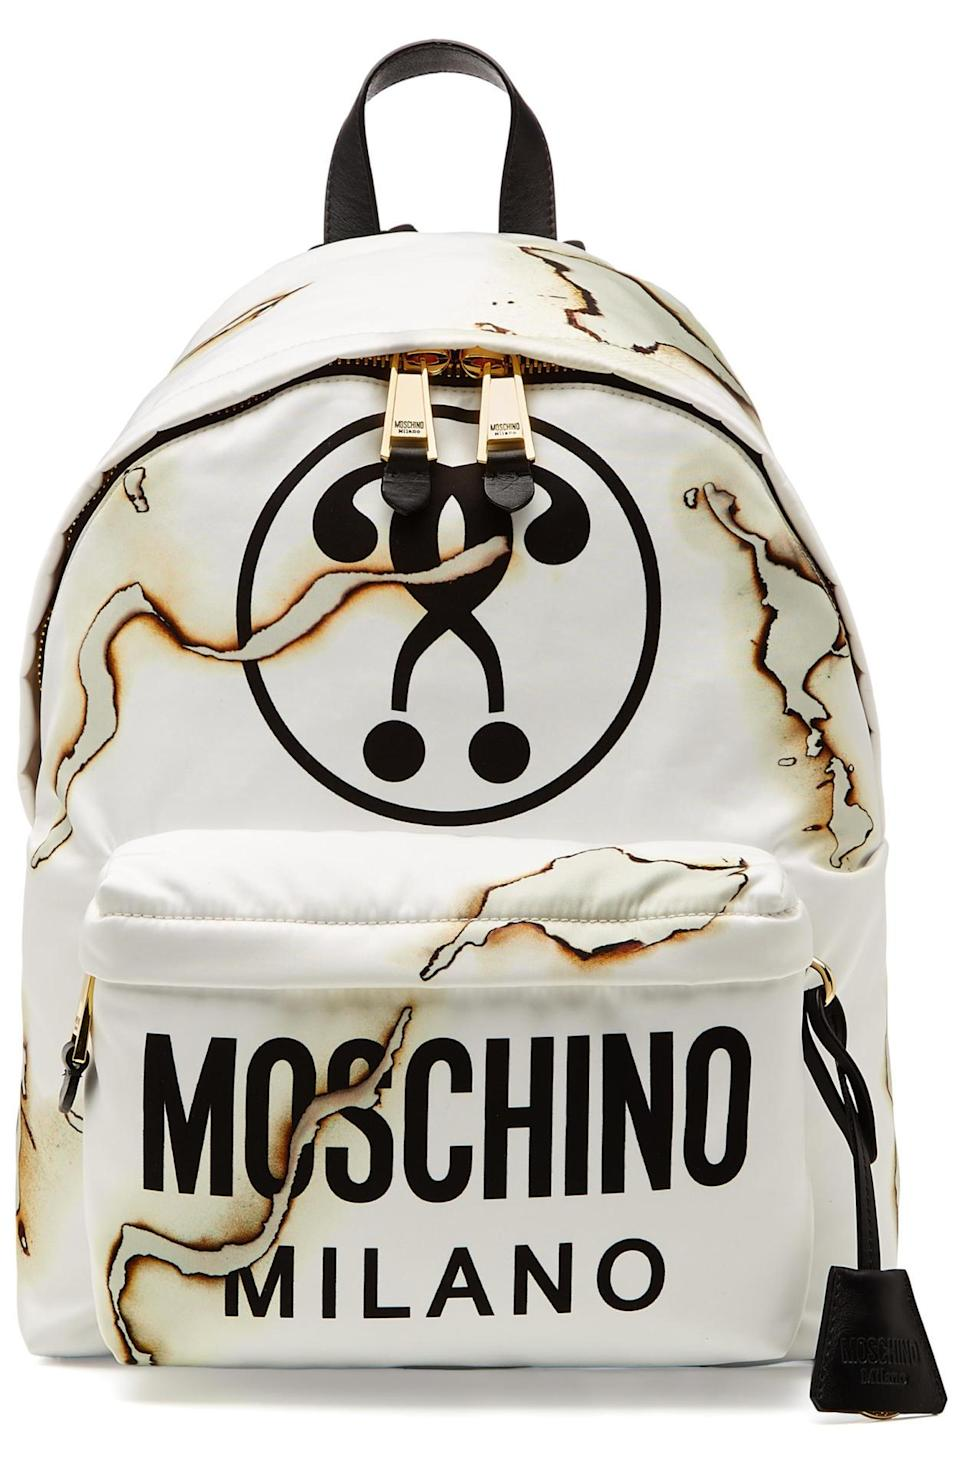 (photo: Moschino)